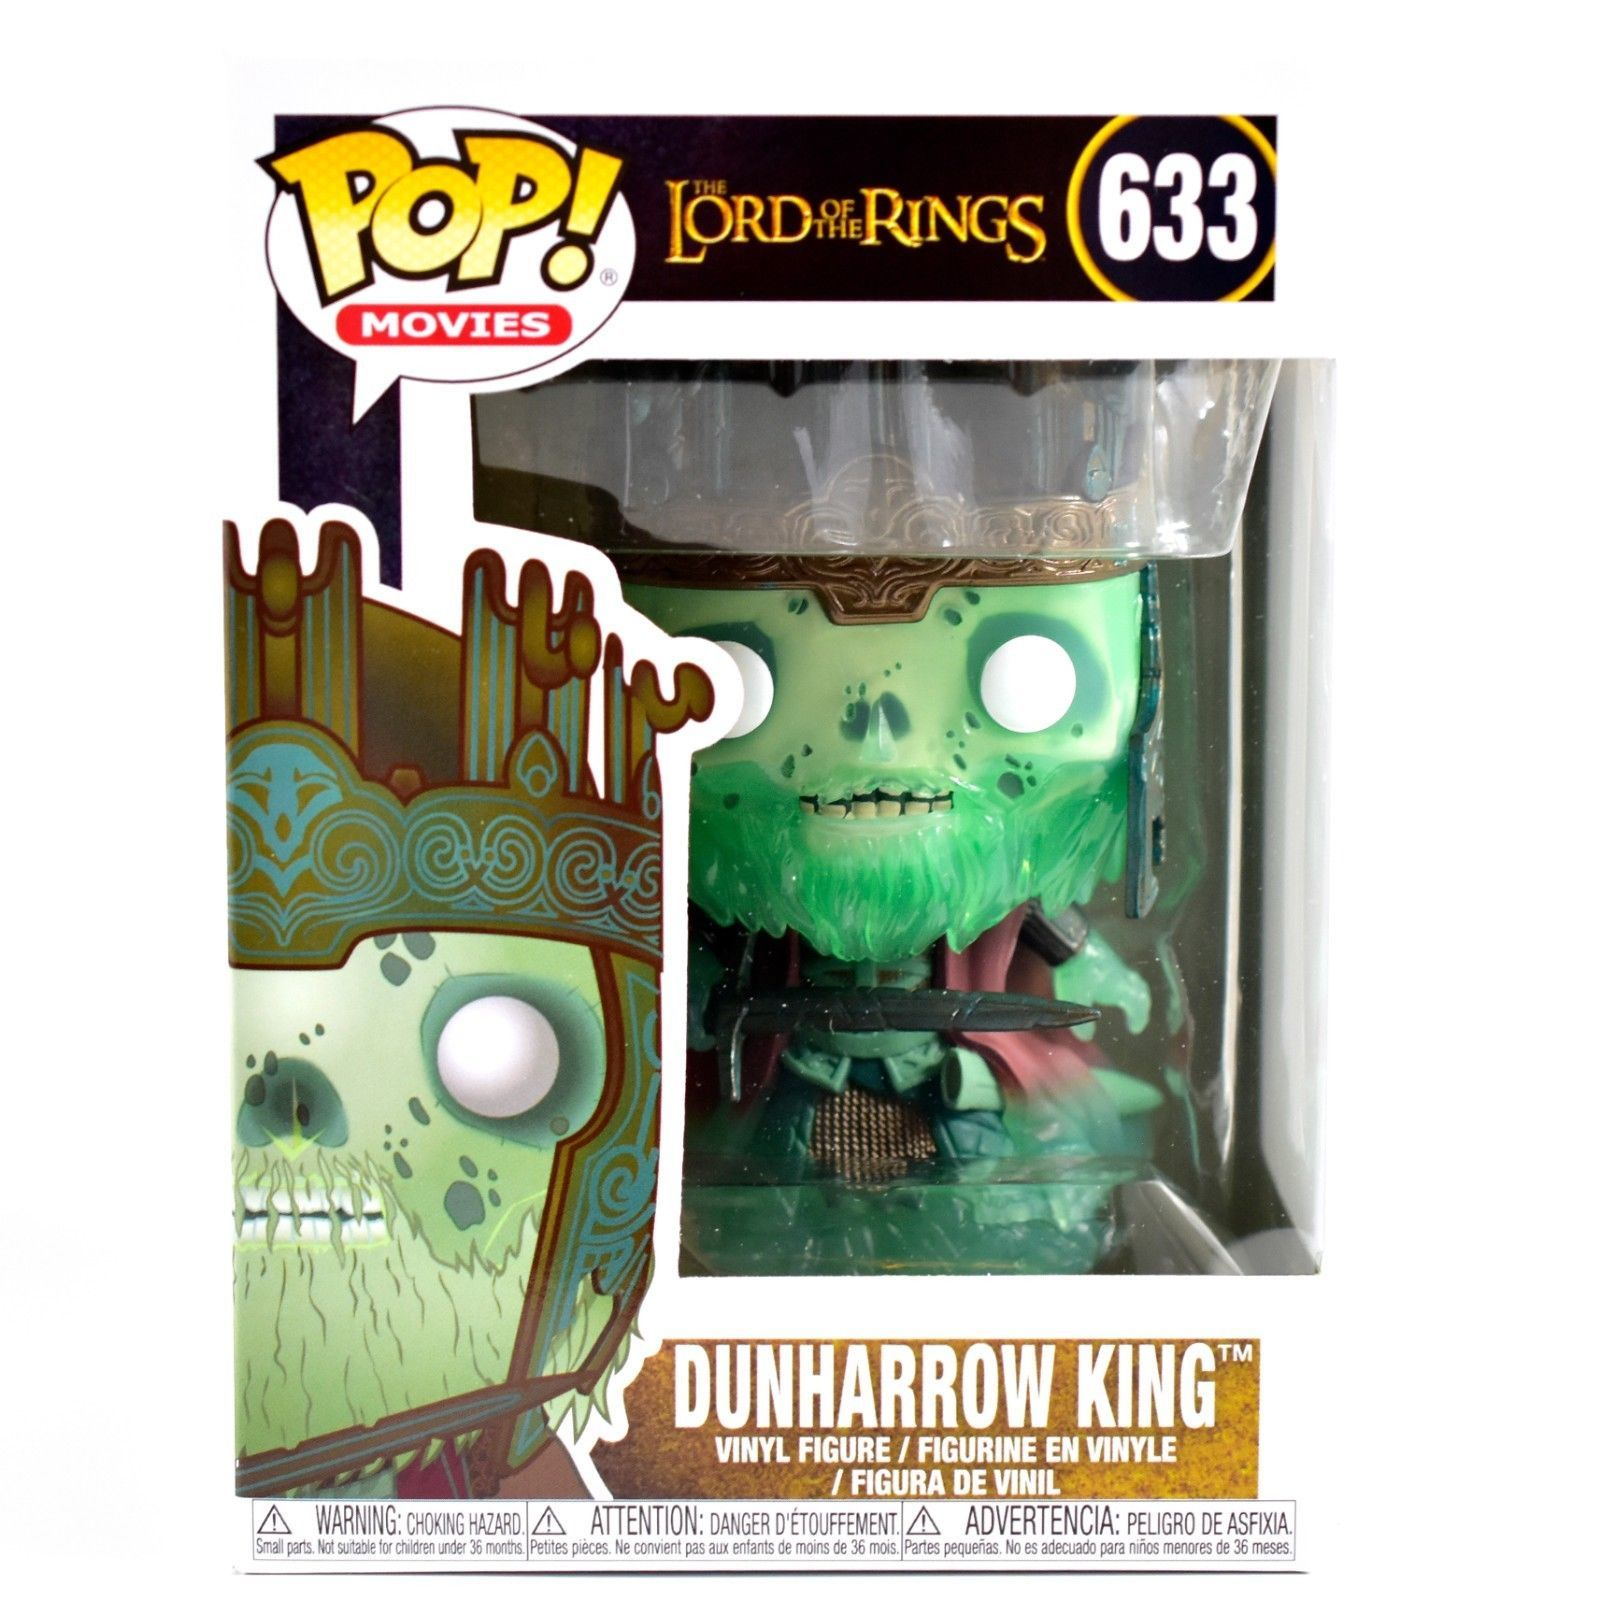 Funko Pop! Movies Lord of the Rings LotR Dunharrow King #633 Vinyl Action Figure